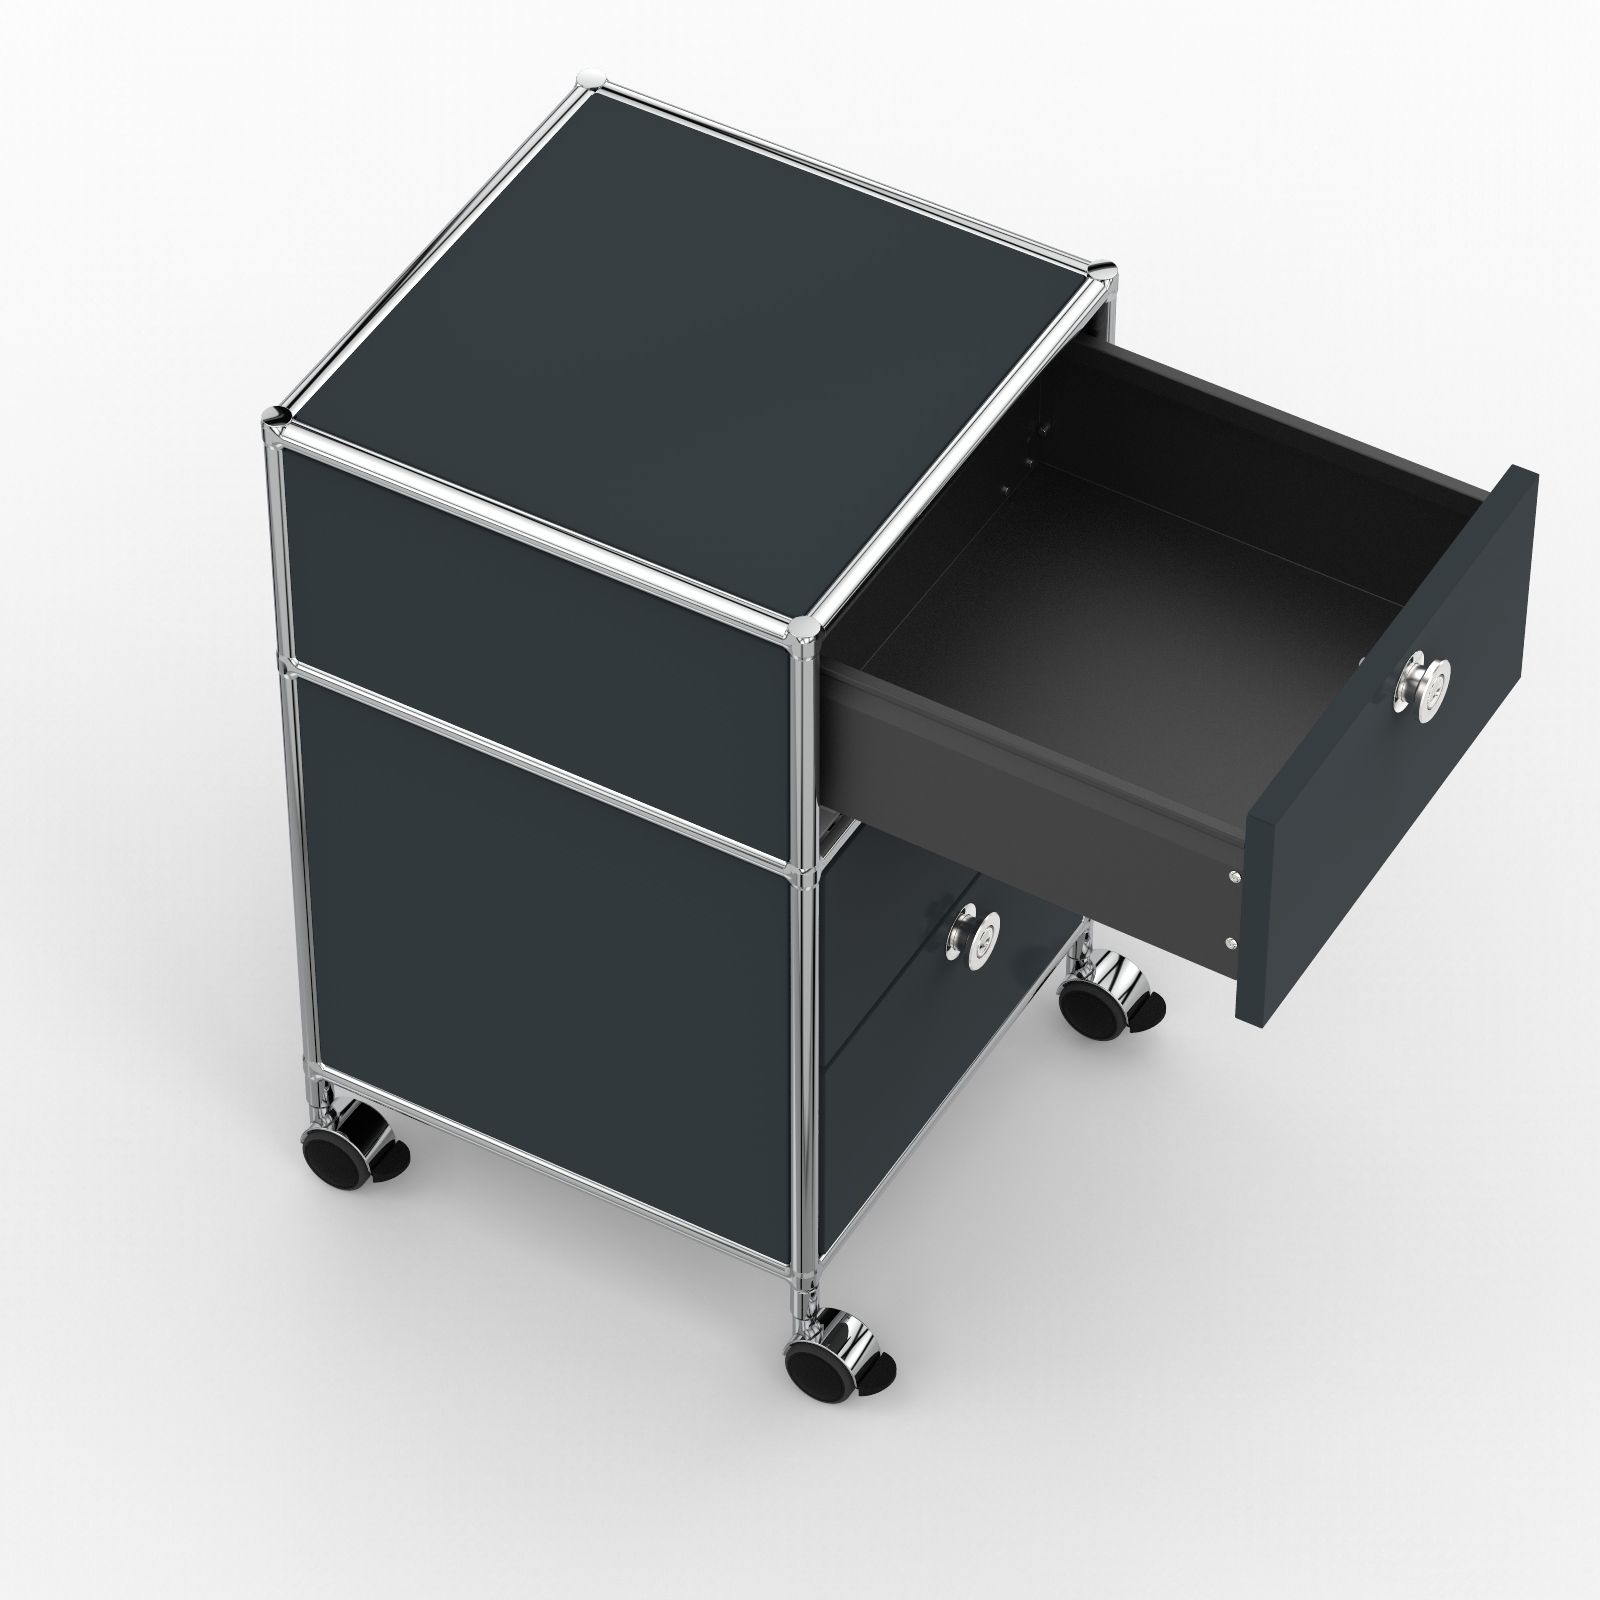 Rollcontainer Design Rollcontainer 40cm 1xes 1xds Ahr Anthrazitgrau Ral